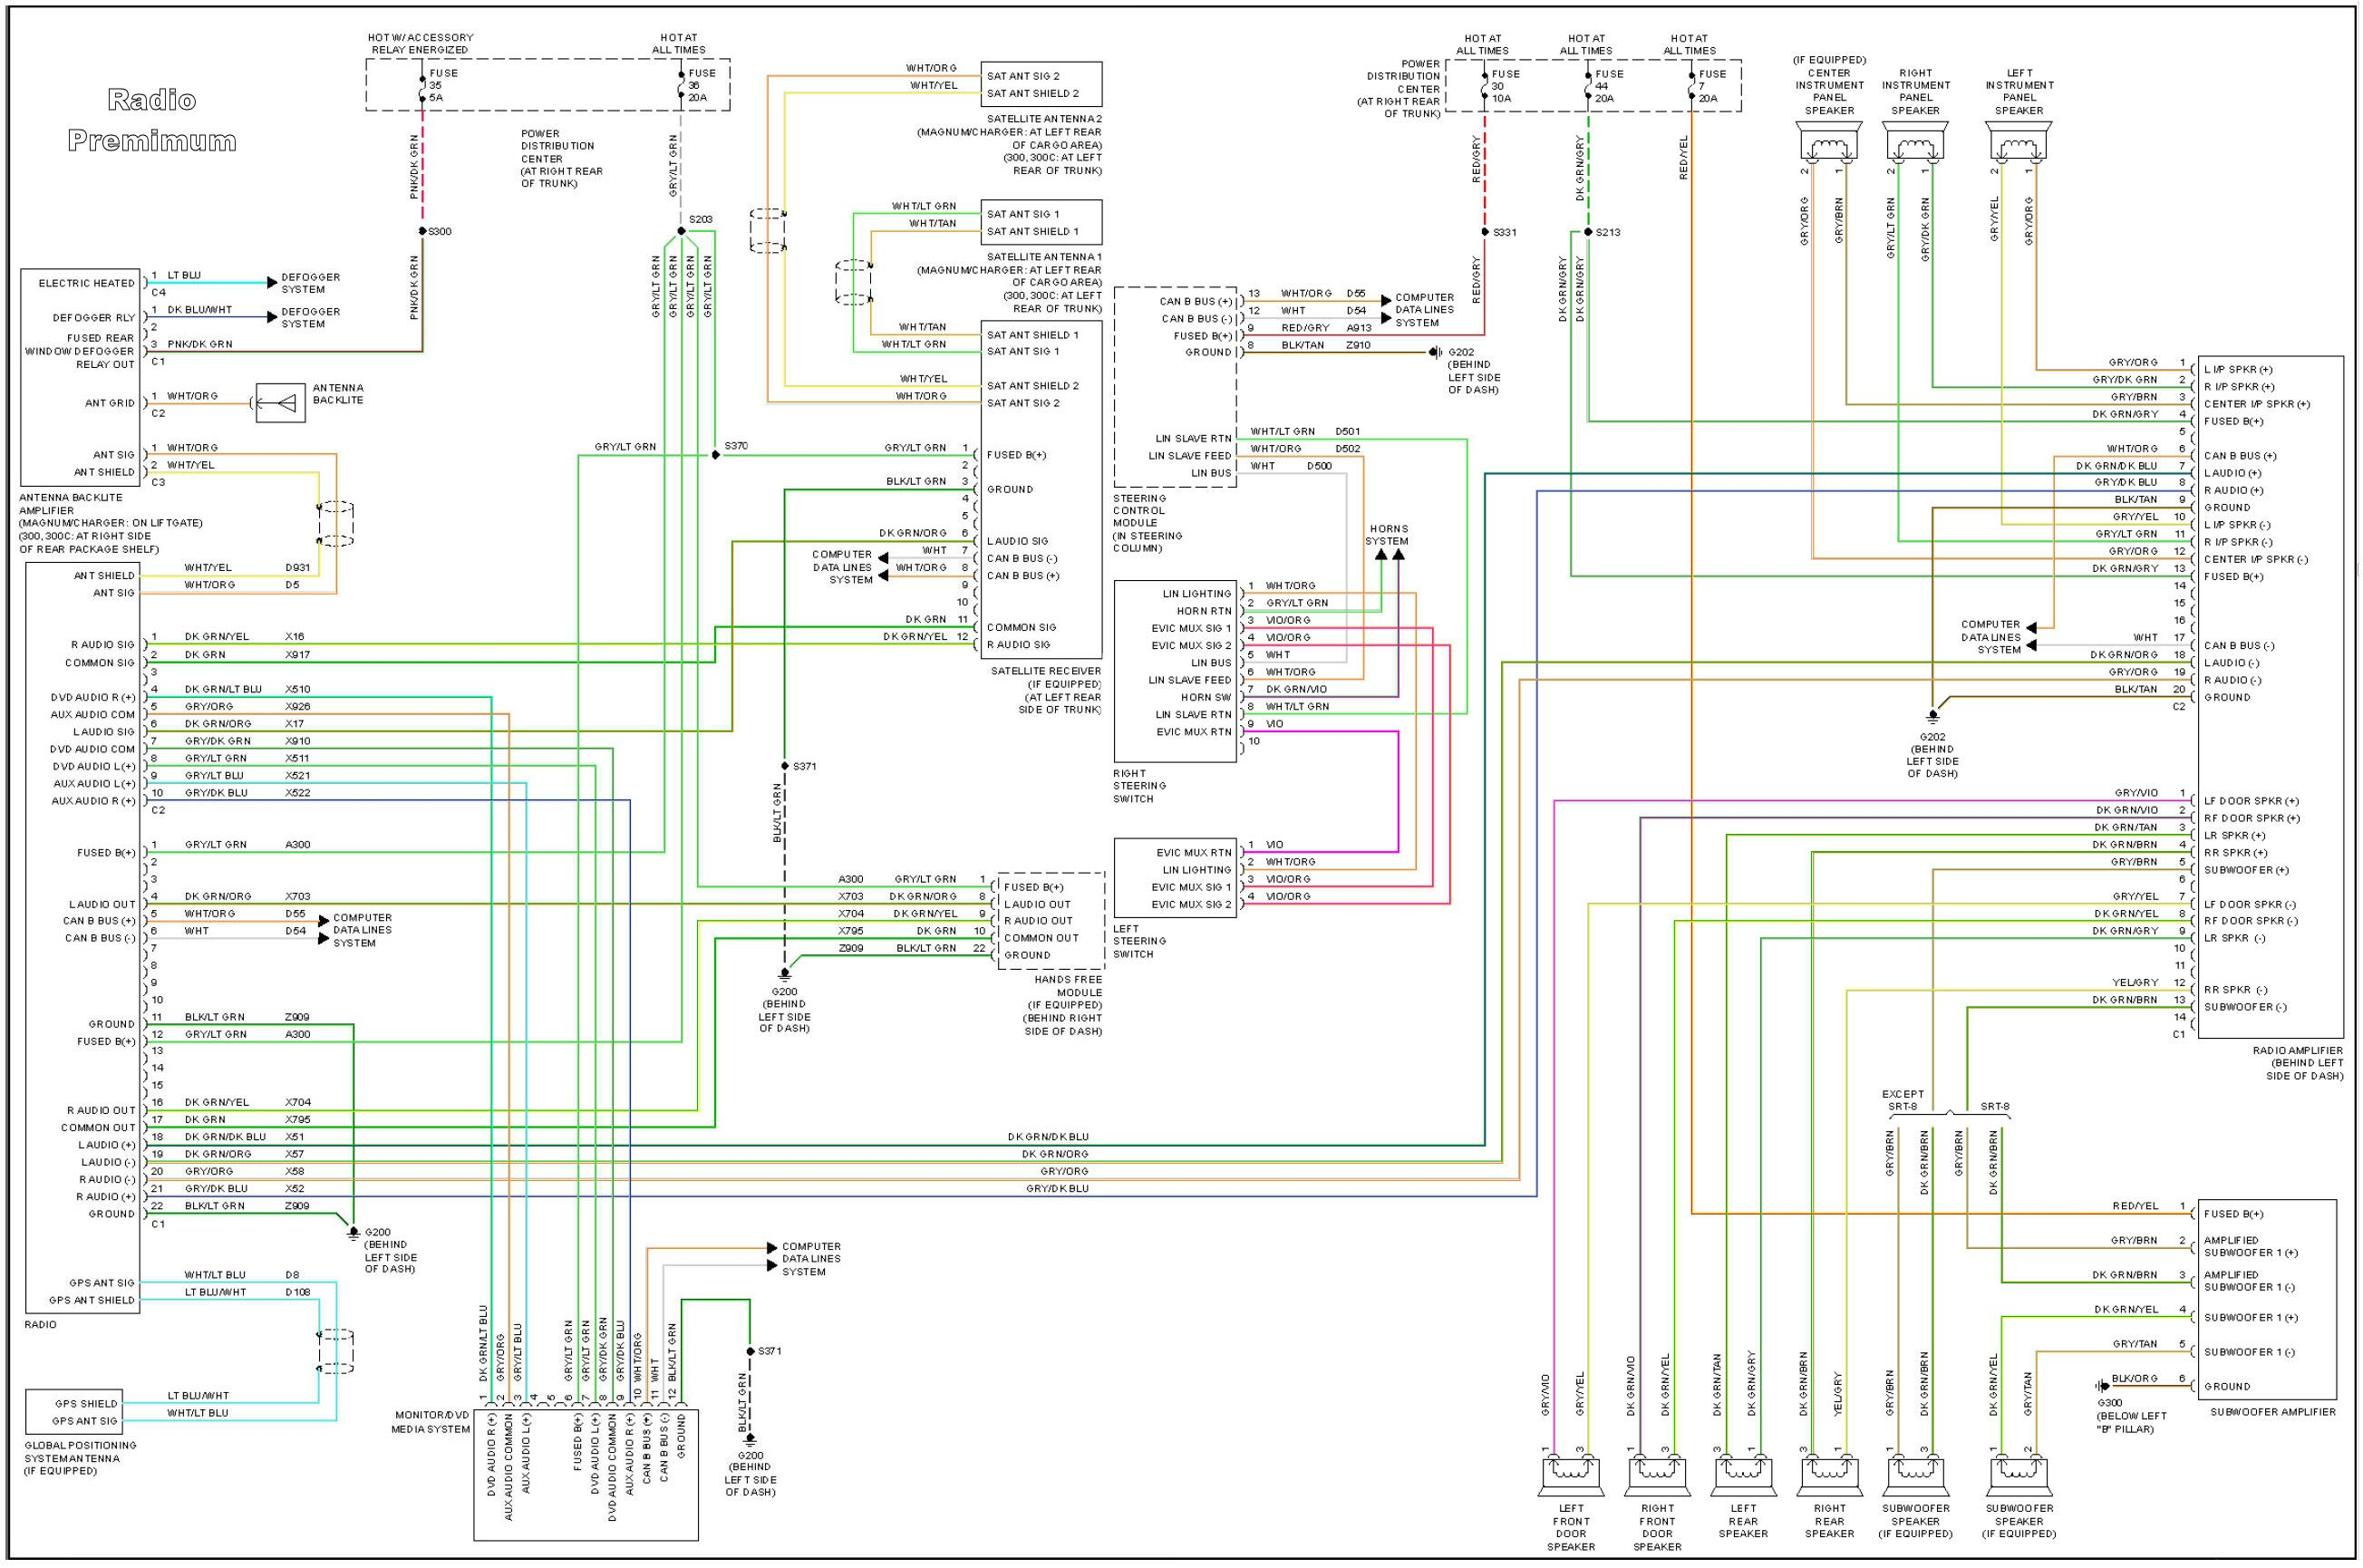 2008 chrysler 300 ac wiring diagram - wiring diagrams wave-metal-a -  wave-metal-a.alcuoredeldiabete.it  al cuore del diabete